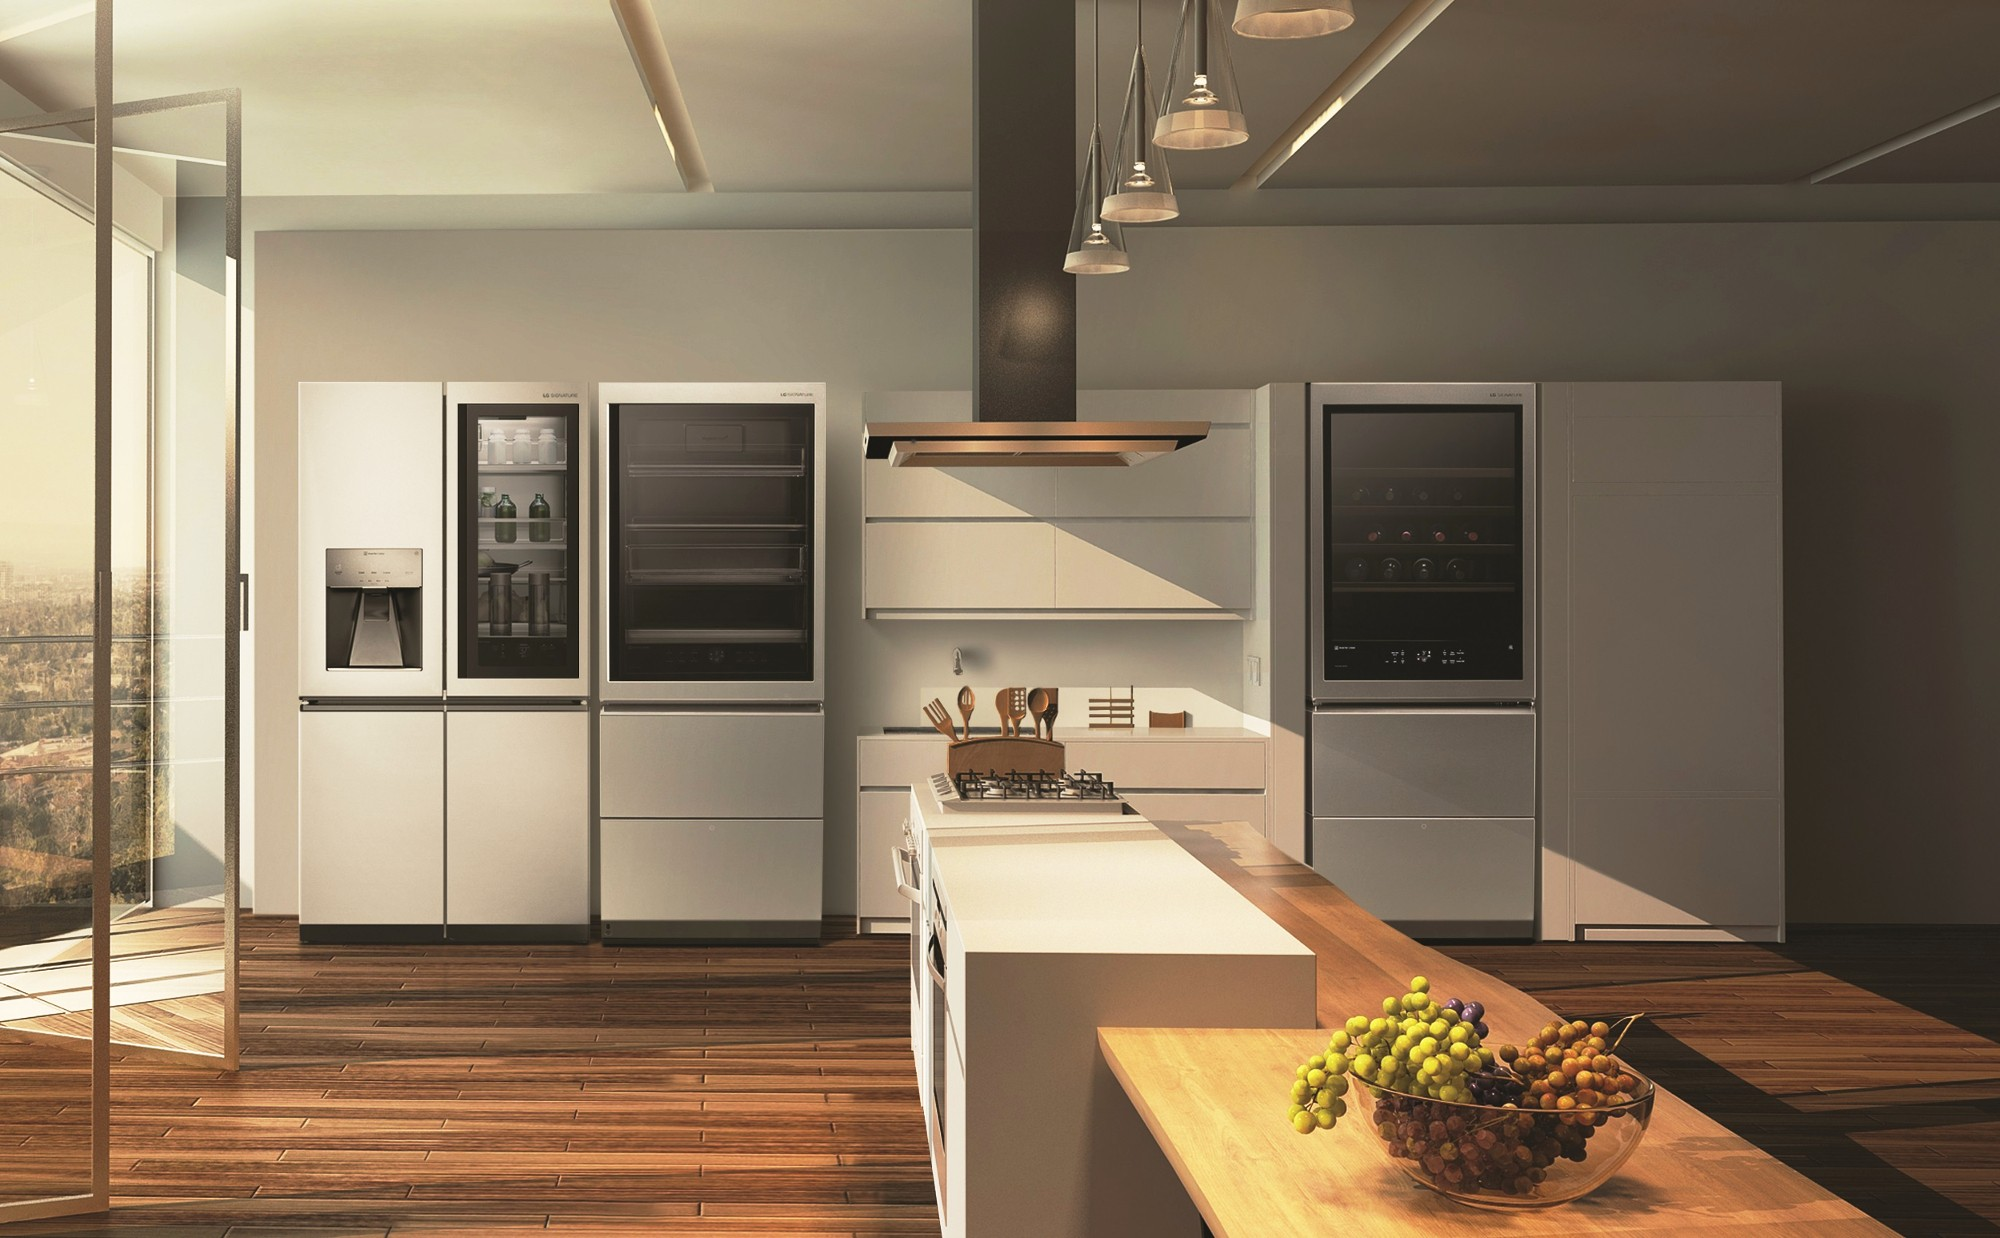 LG SIGNATURE Side-by-Side refrigerator, bottom-freezer refrigerator and wine cellar placed inside a modern kitchen.